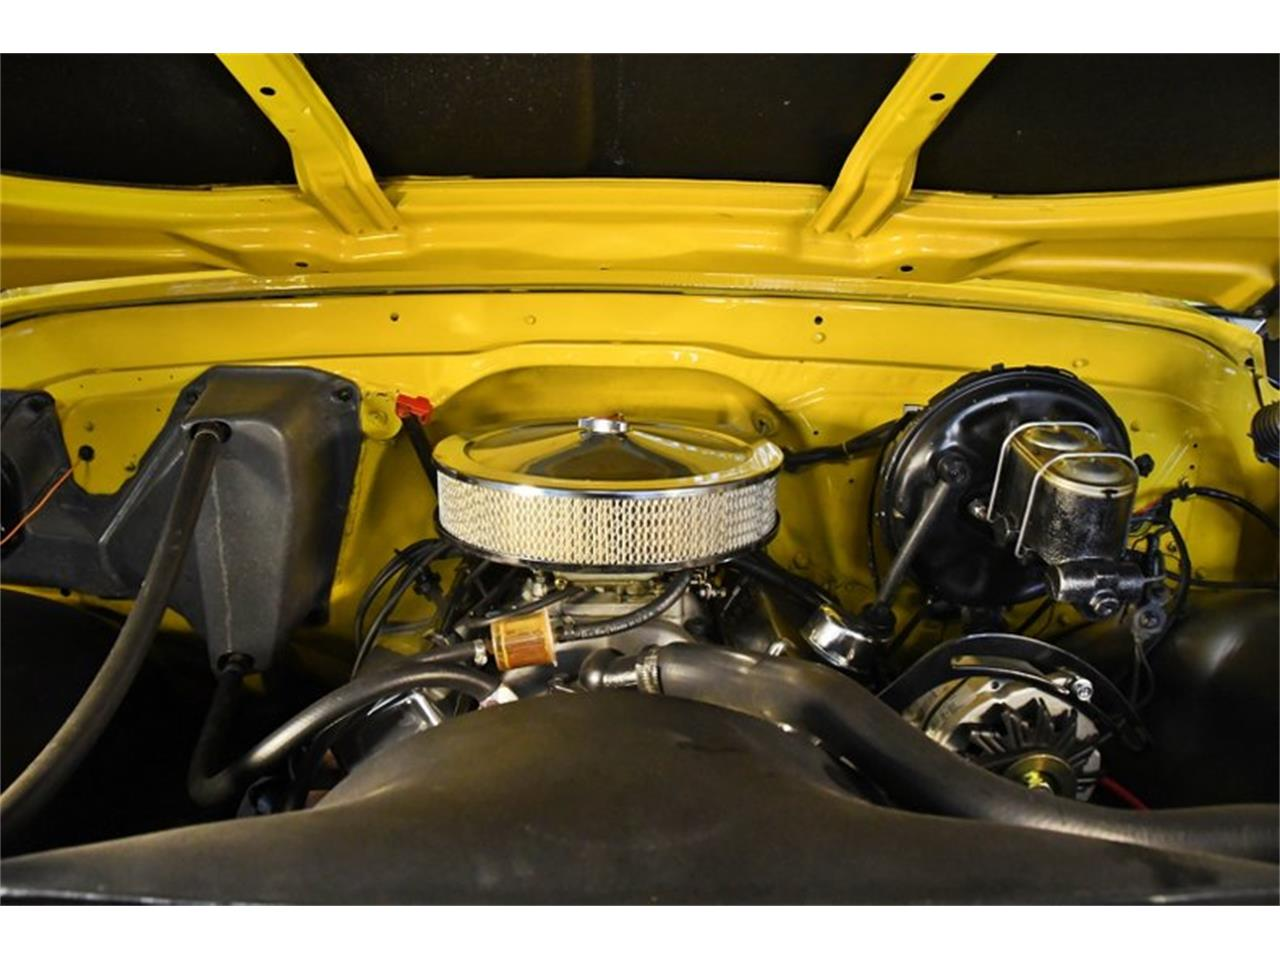 Large Picture of Classic 1971 Blazer located in Illinois - $43,998.00 - Q2WH